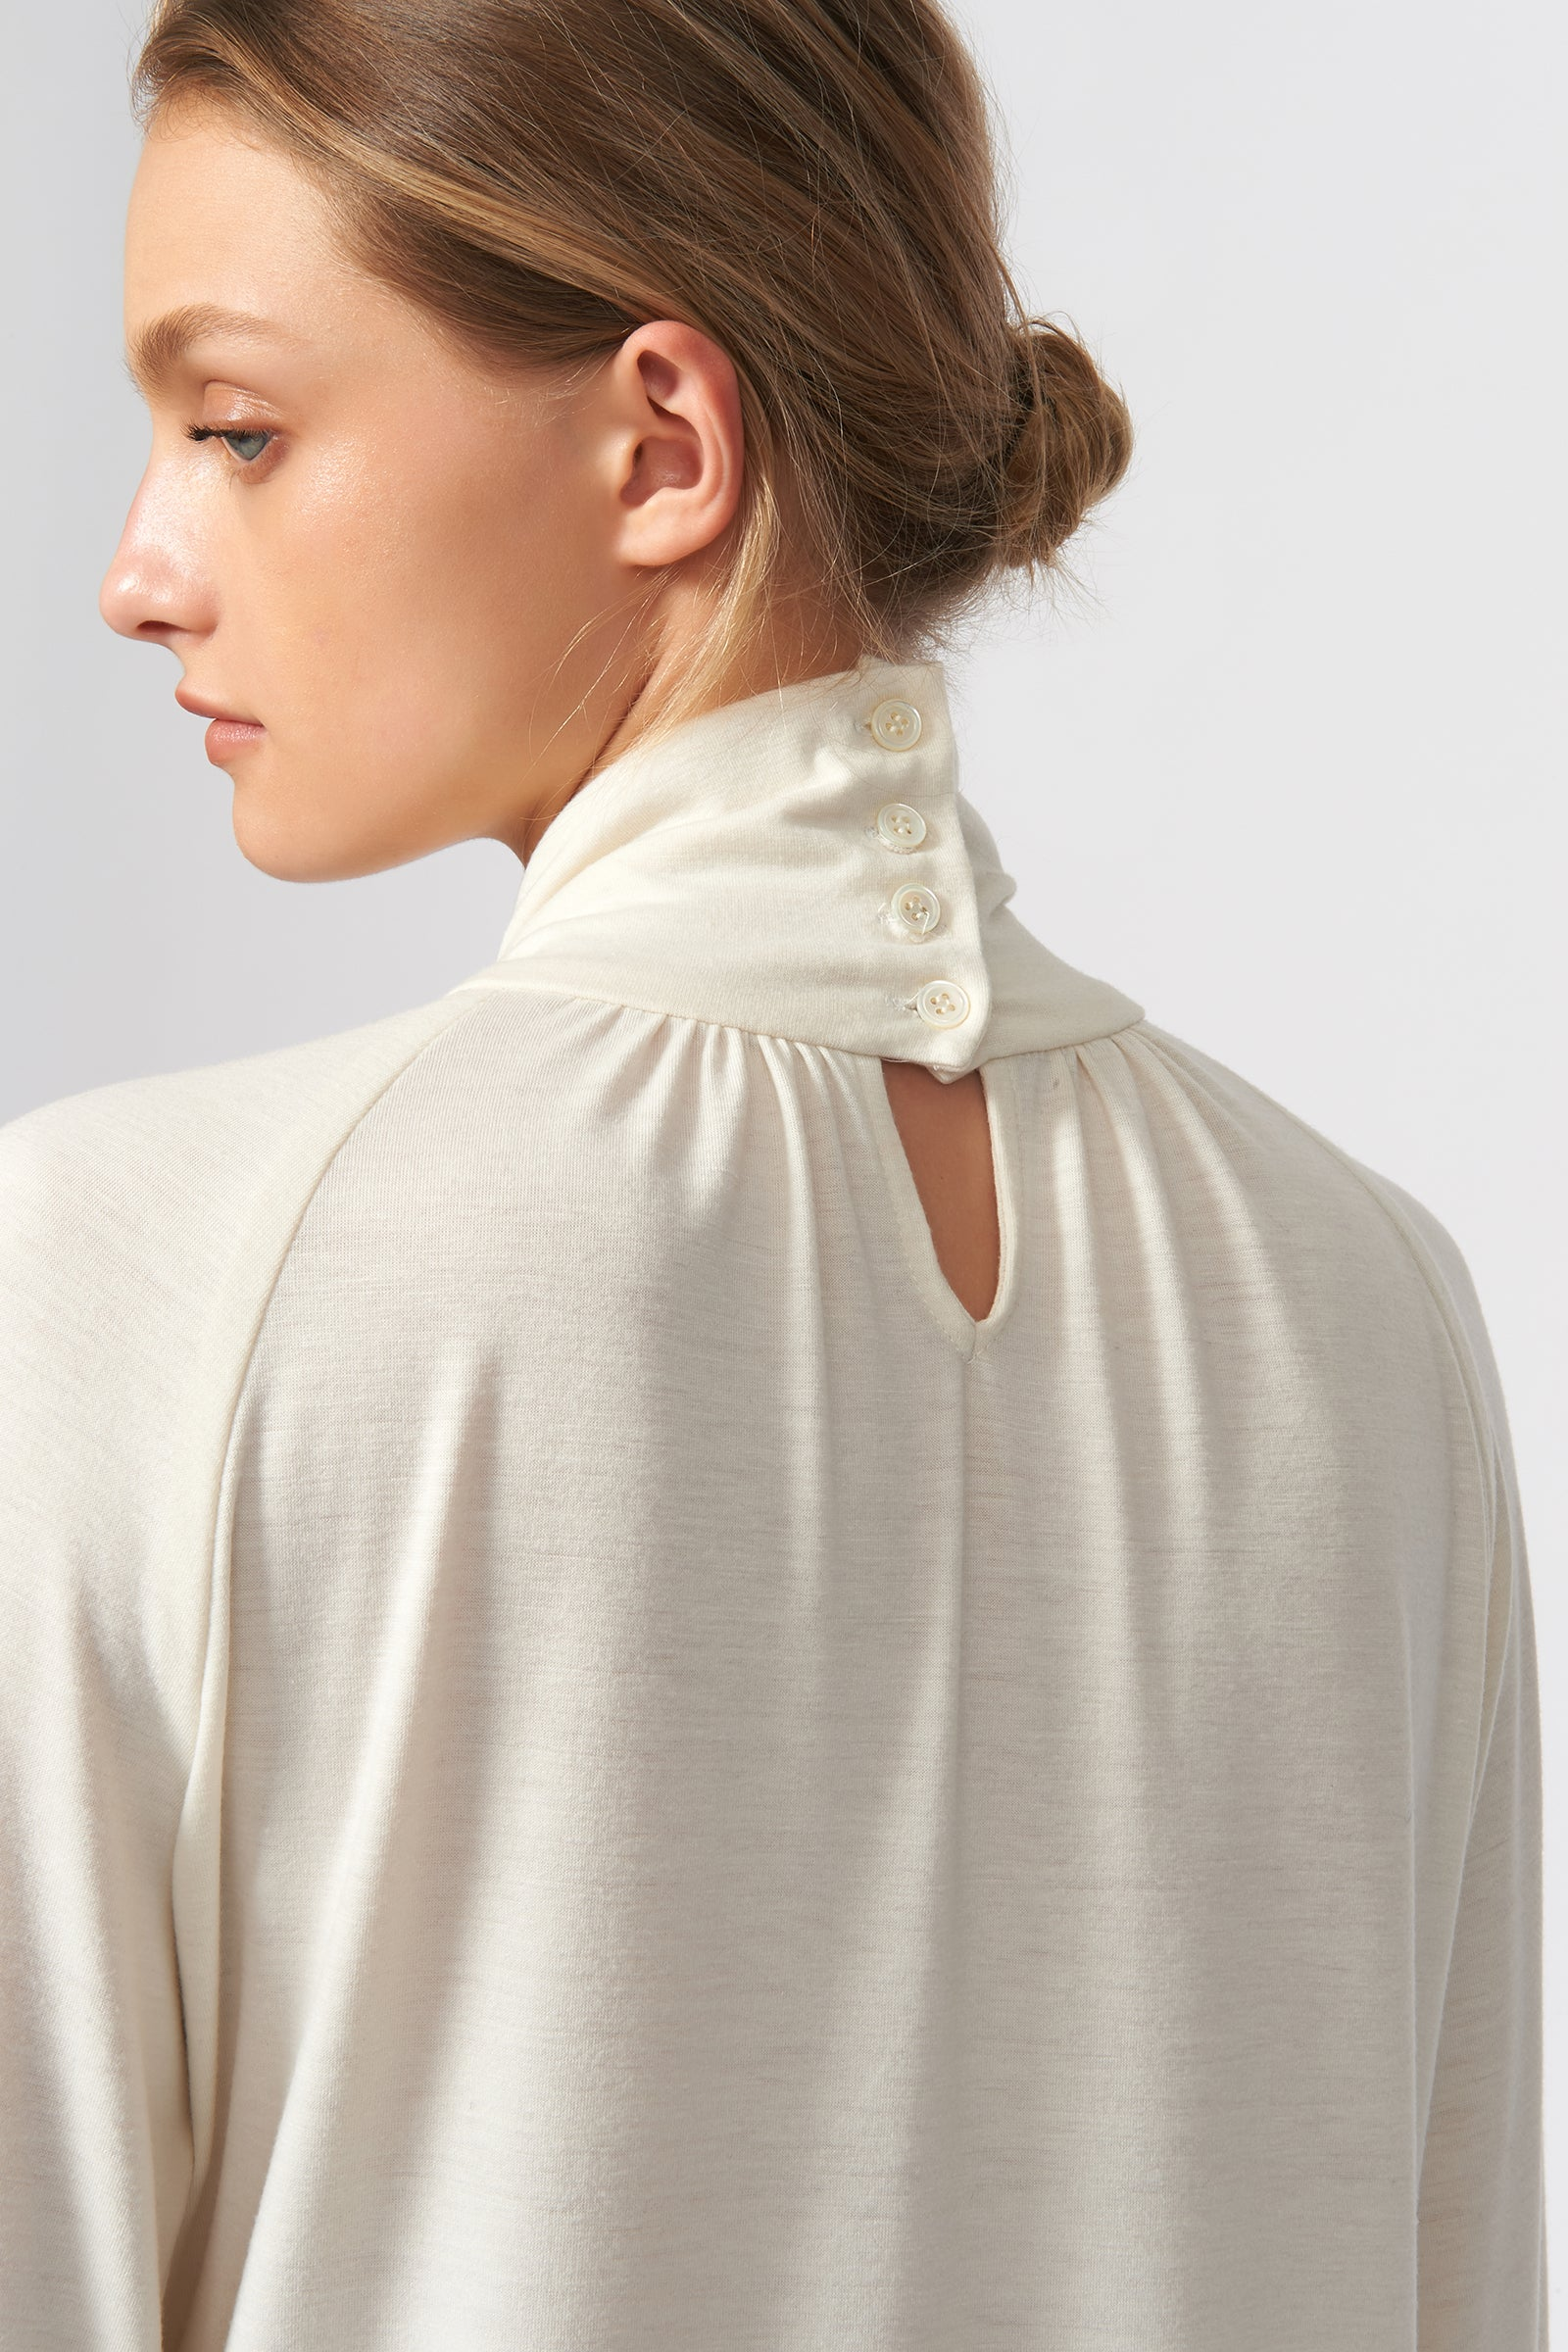 Kal Rieman Priestess Knit Blouse in Cream on Model Back Detail View